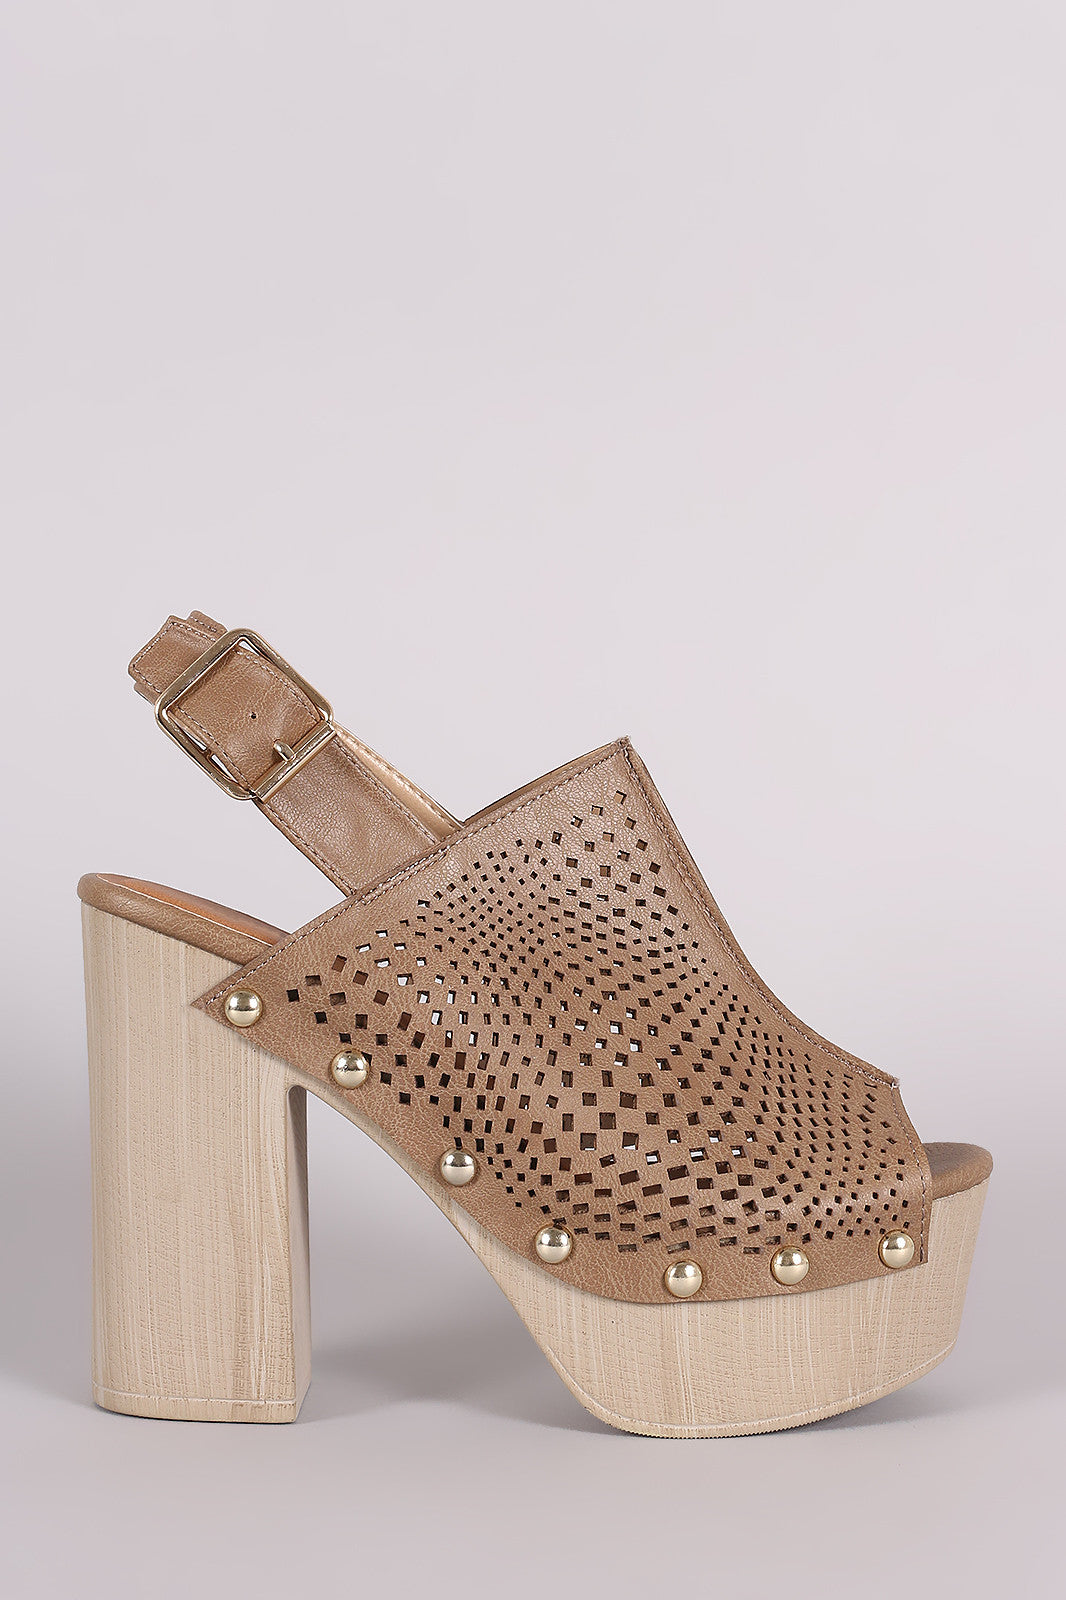 Qupid Perforated Slingback Studded Chunky Platform Mule Heel - Thick 'N' Curvy Shop - 4